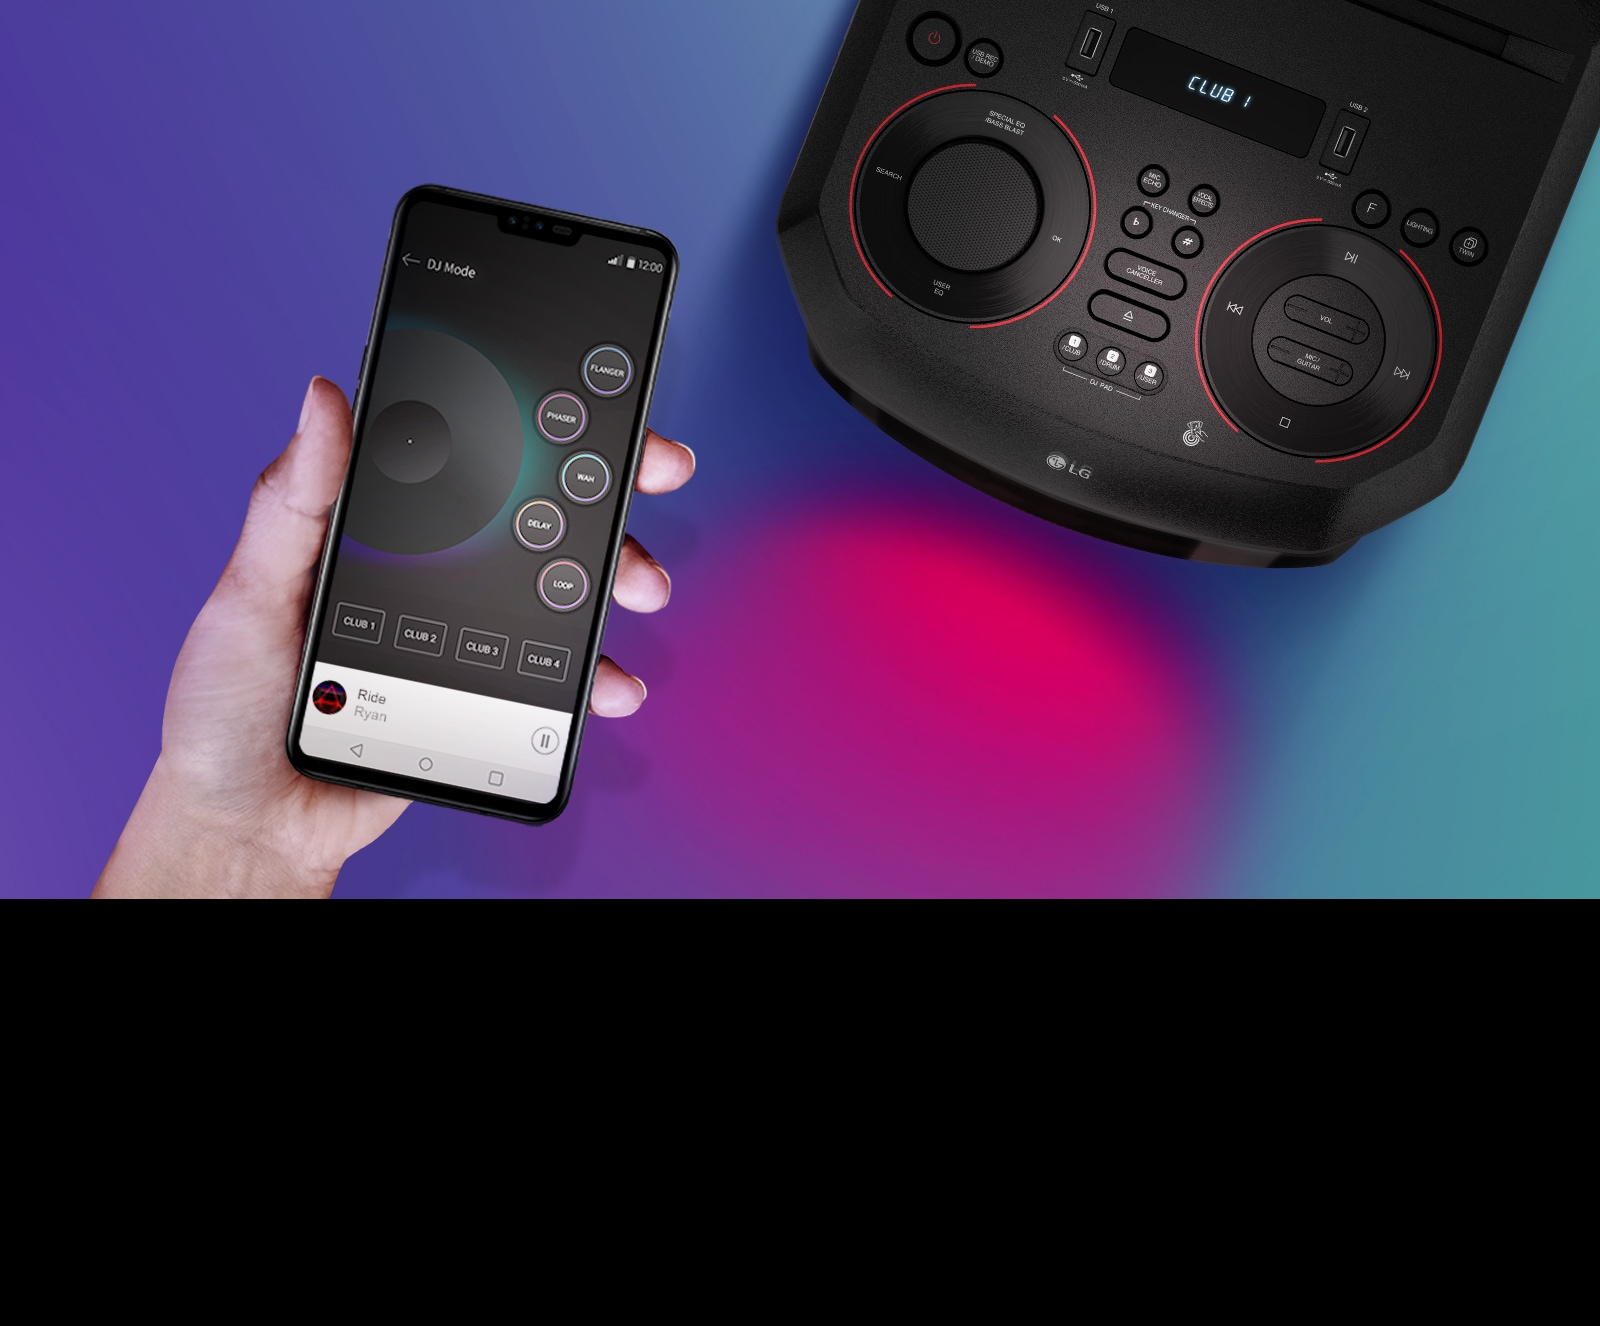 A hand holding a smartphone next to a top view of LG XBOOM.